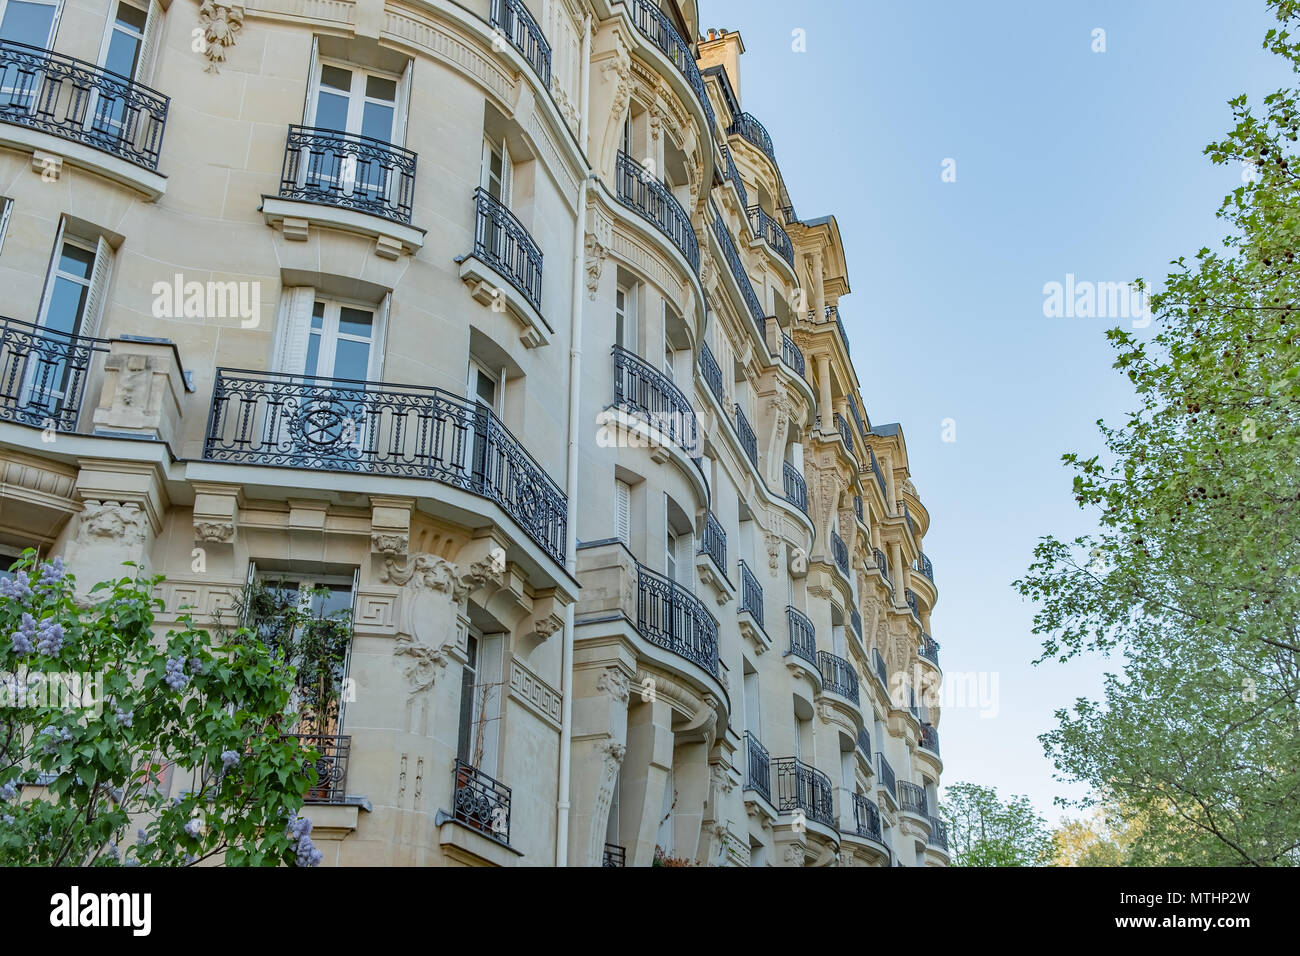 Looking up at a typical old Paris apartment building. - Stock Image